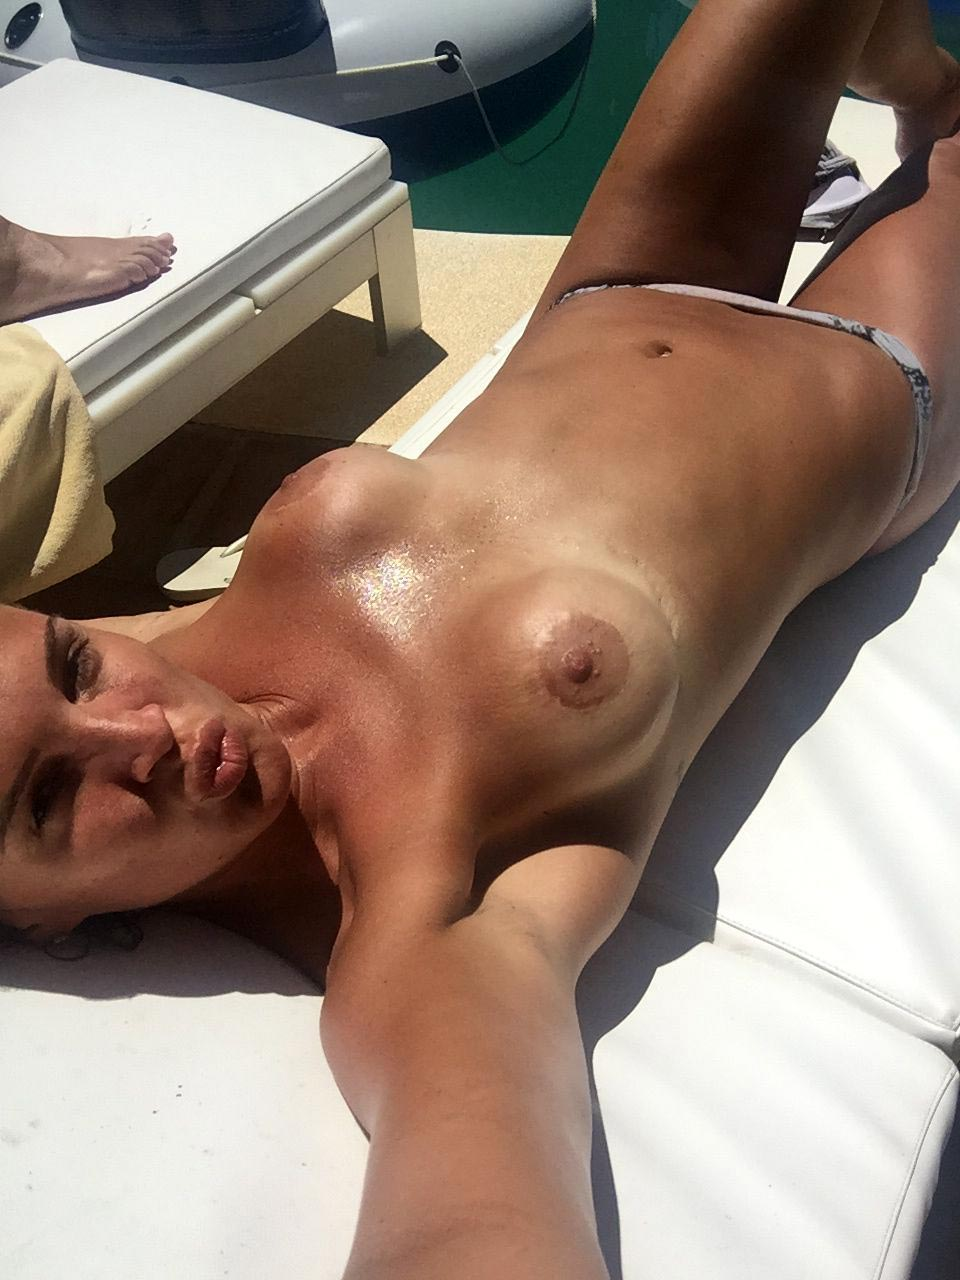 Lewis flanagan the male fappening